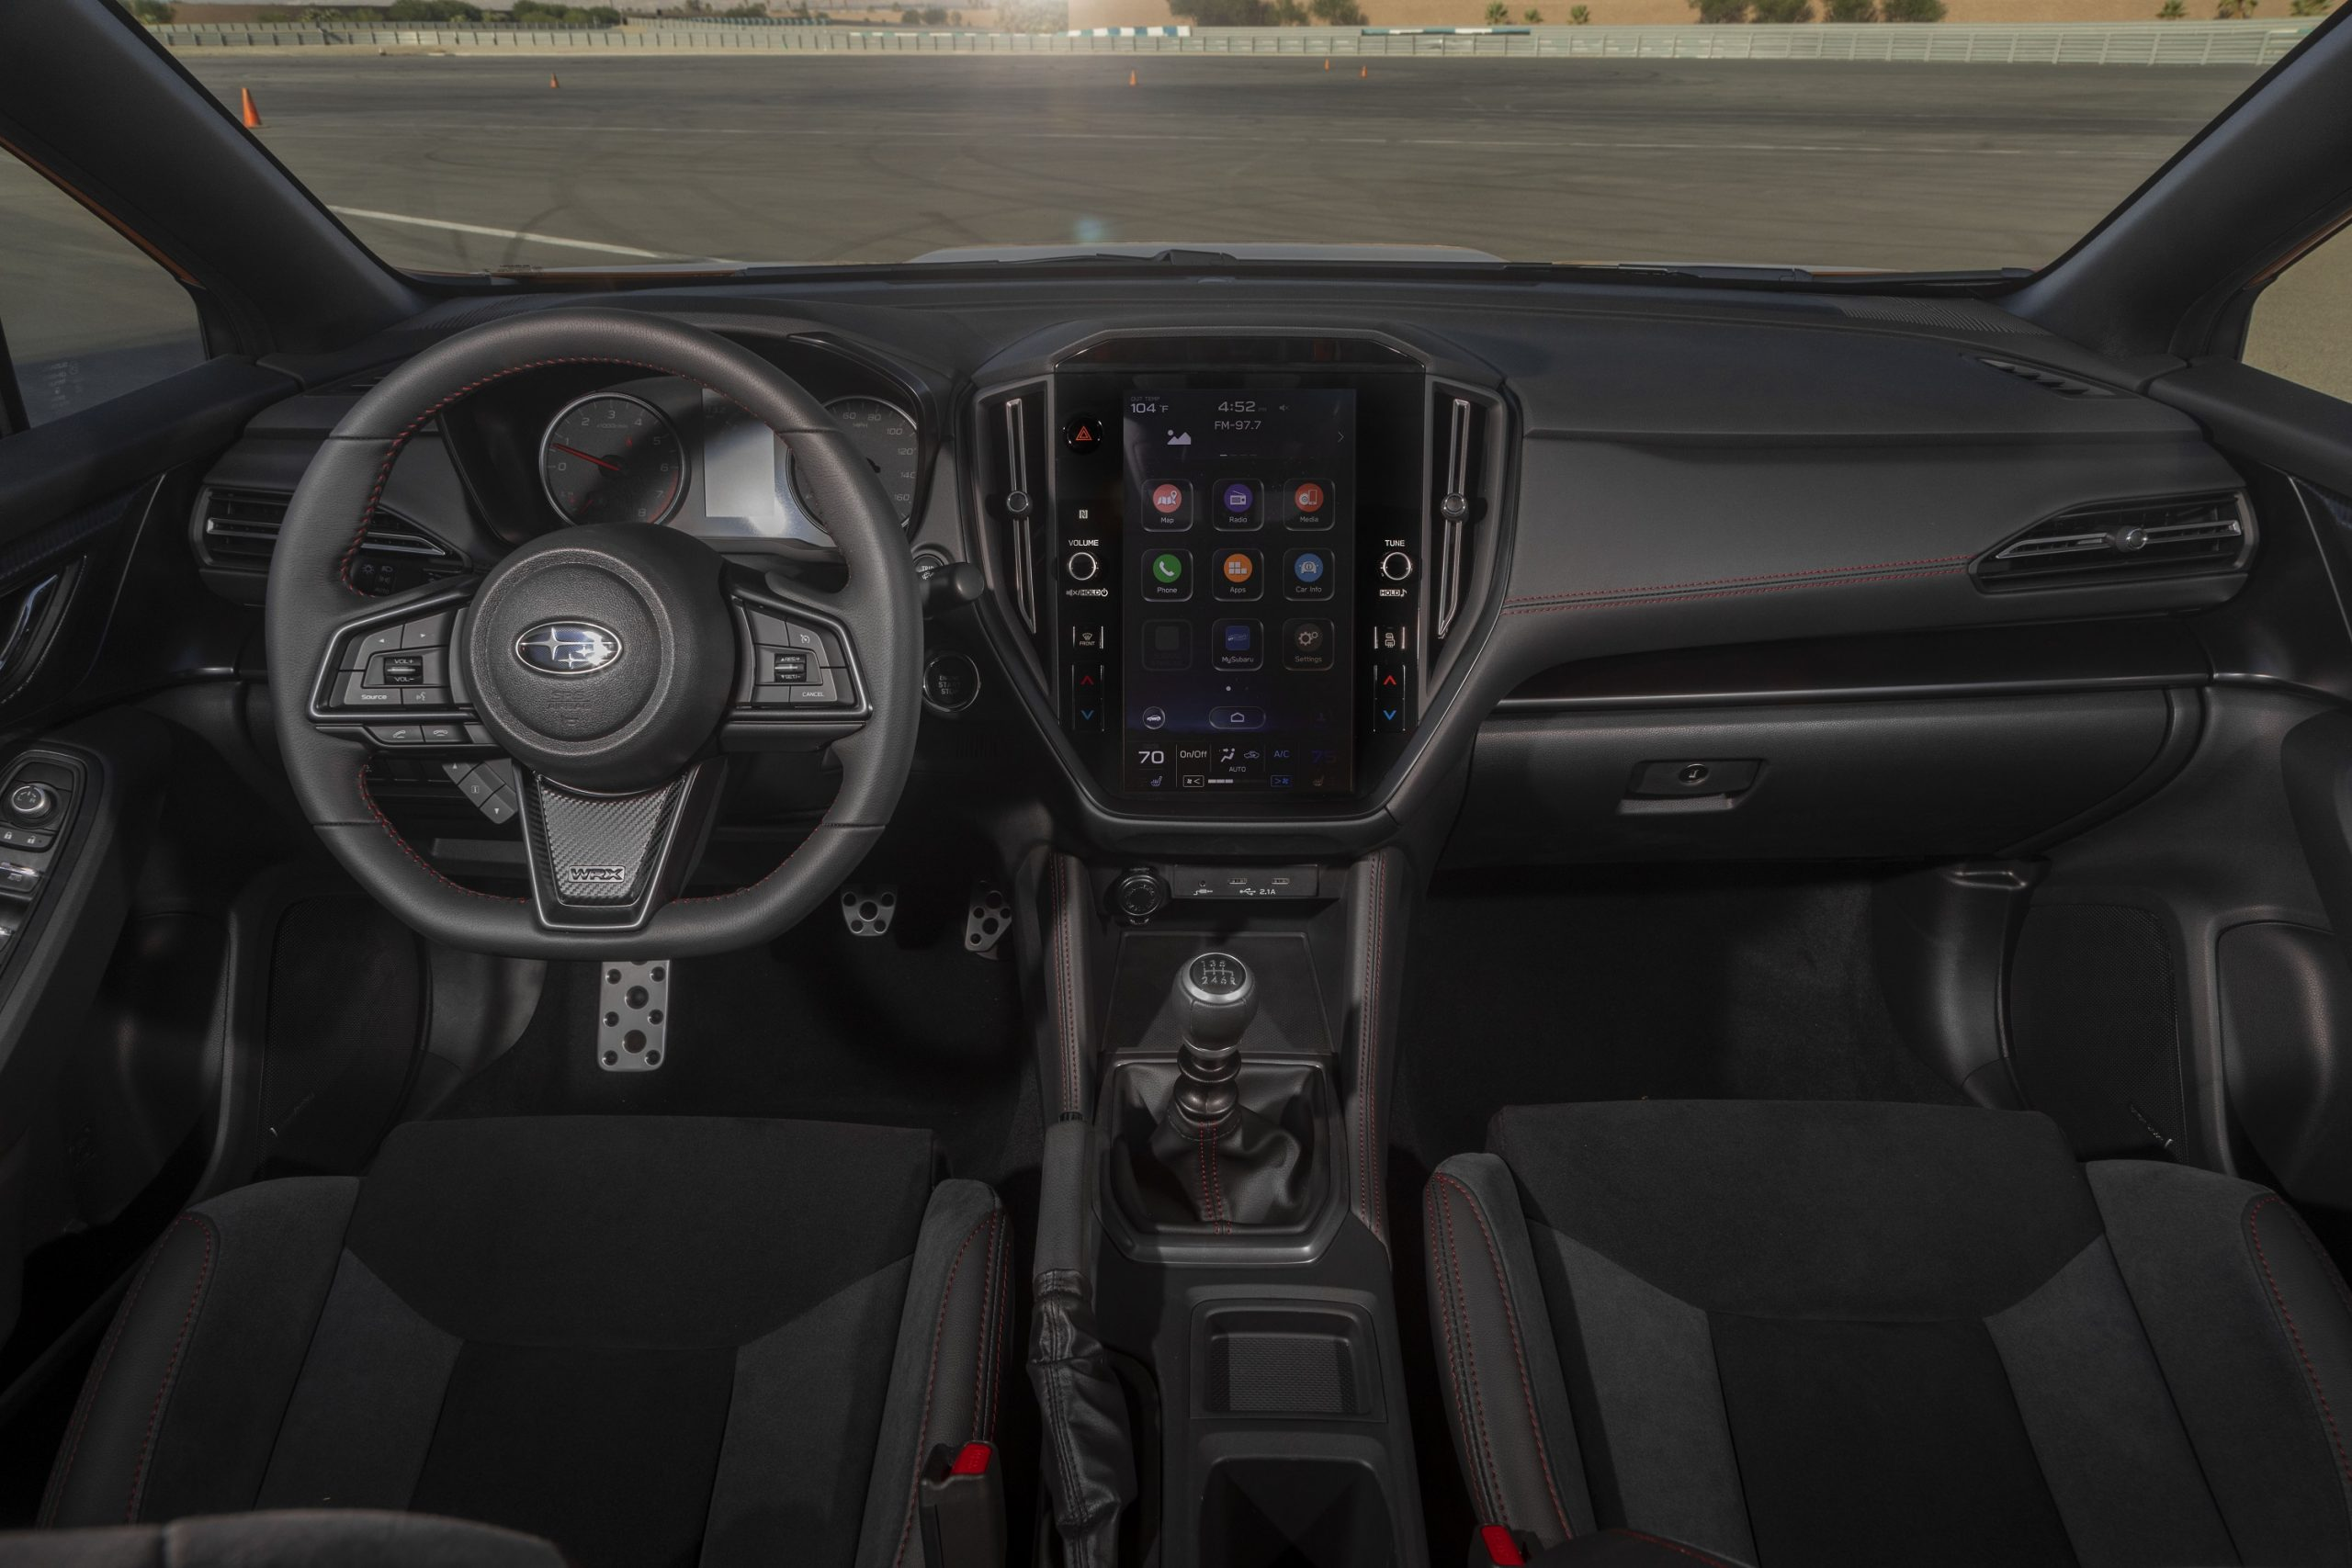 The black interior of the 2022 Subaru WRX with manual transmission, shot from the center rear seat